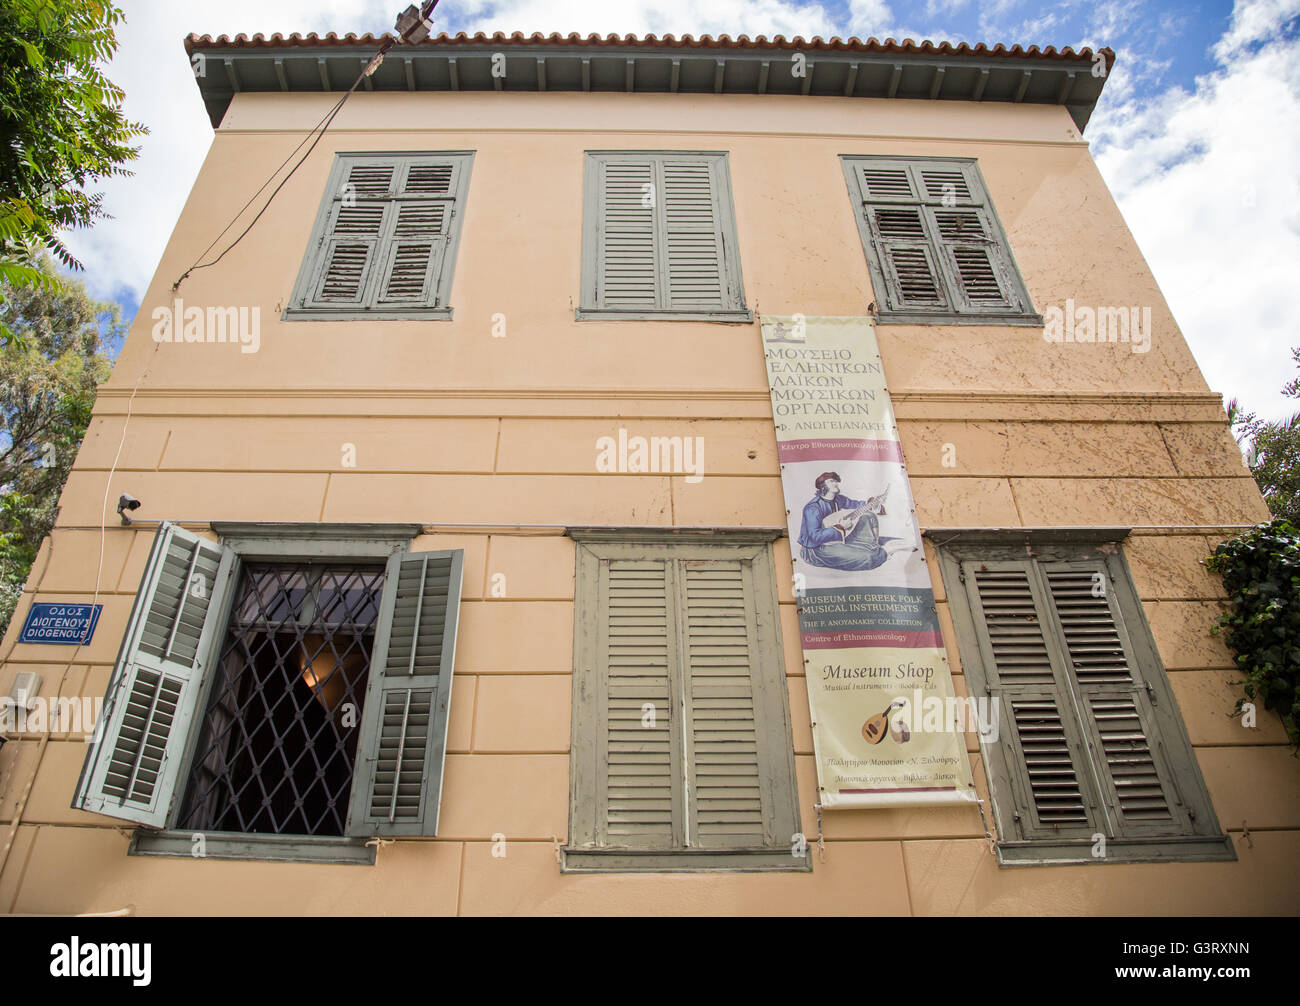 The exterior of the building housing the Museum of Greek Folk Musical Instruments, in central Athens, Greece. - Stock Image